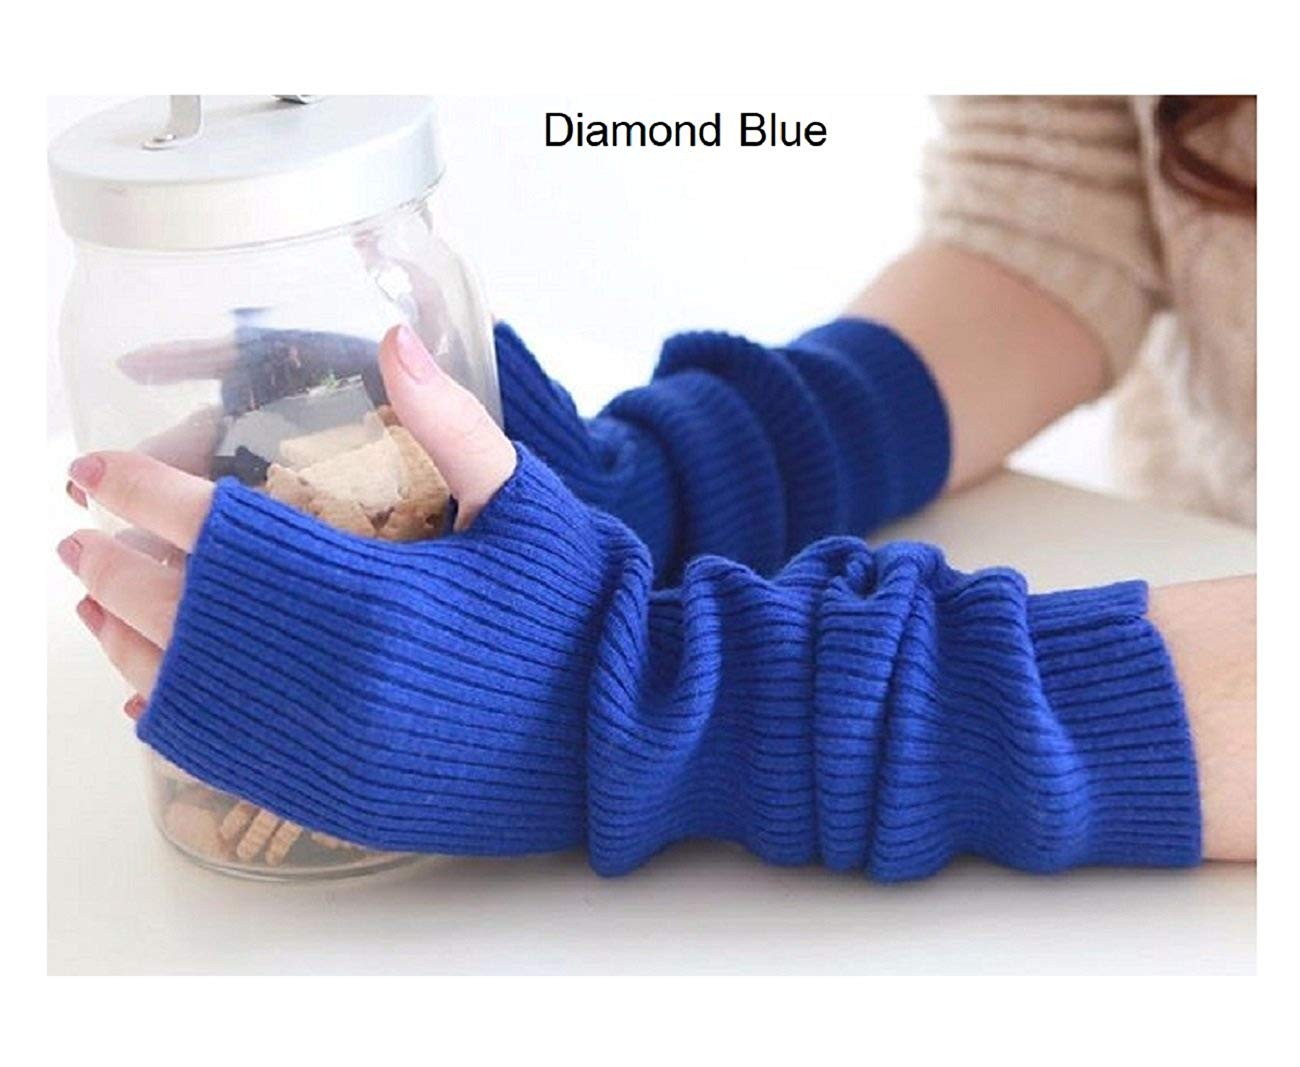 LB-Women's Winter Christmas Cashmere Blend Knitted Long Gloves Fashion Warm For Lady Elbow Mittens